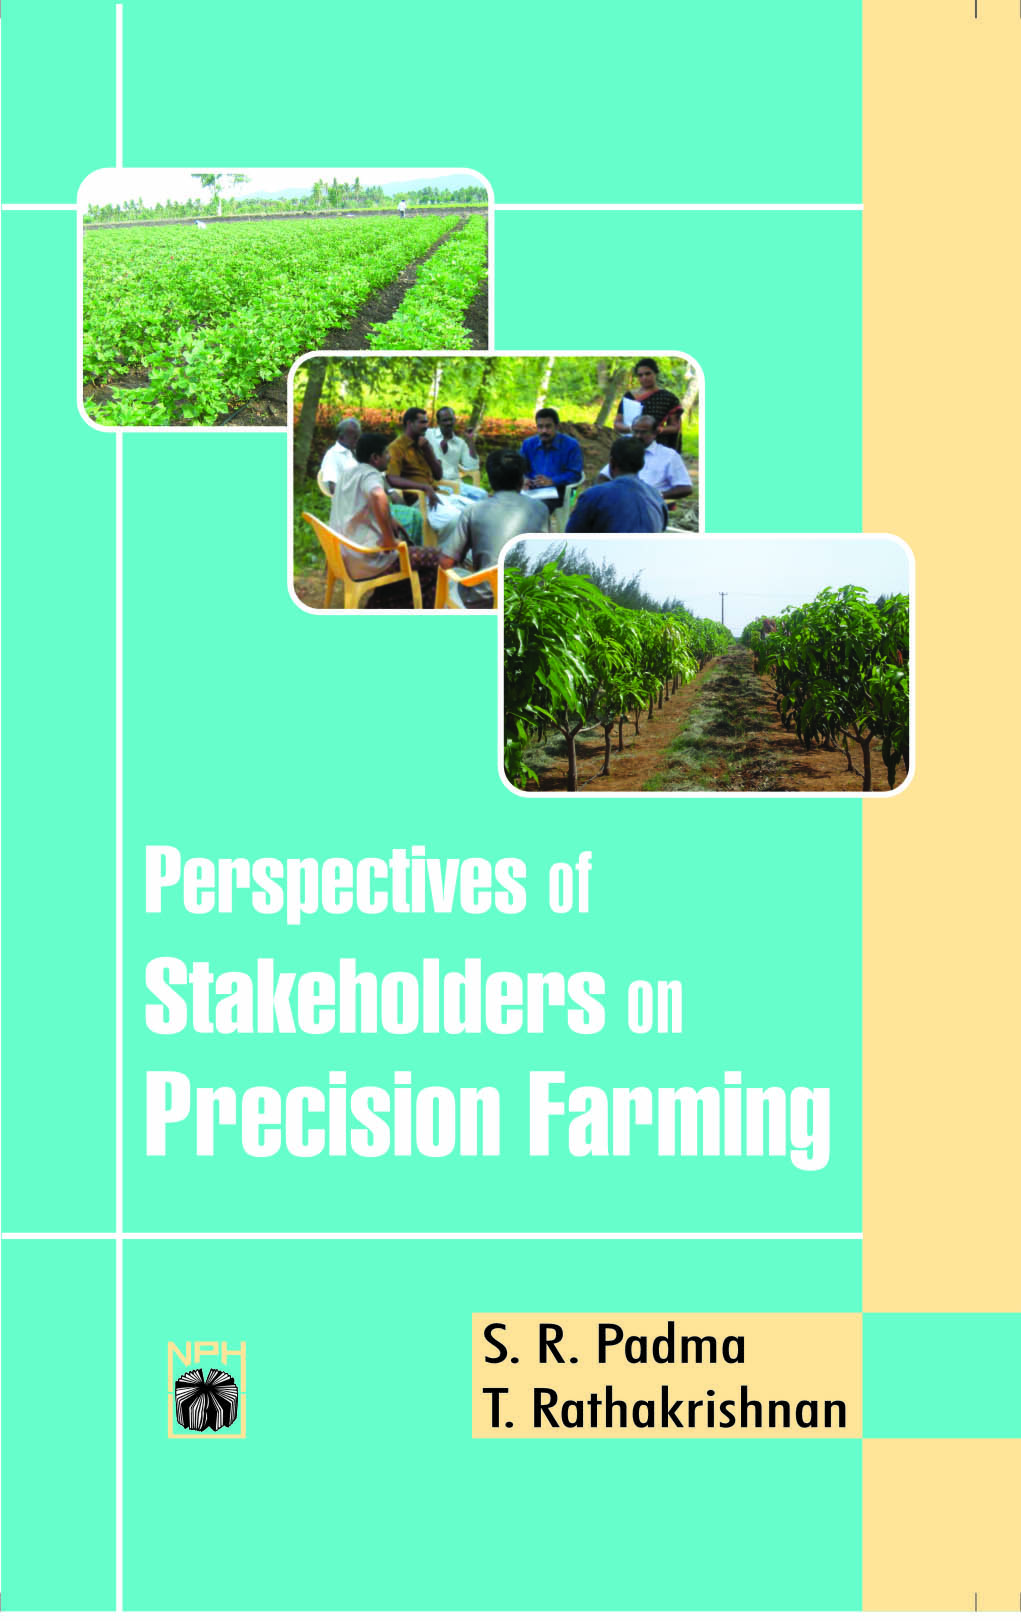 Perspectives of Stakeholders on Precision Farming